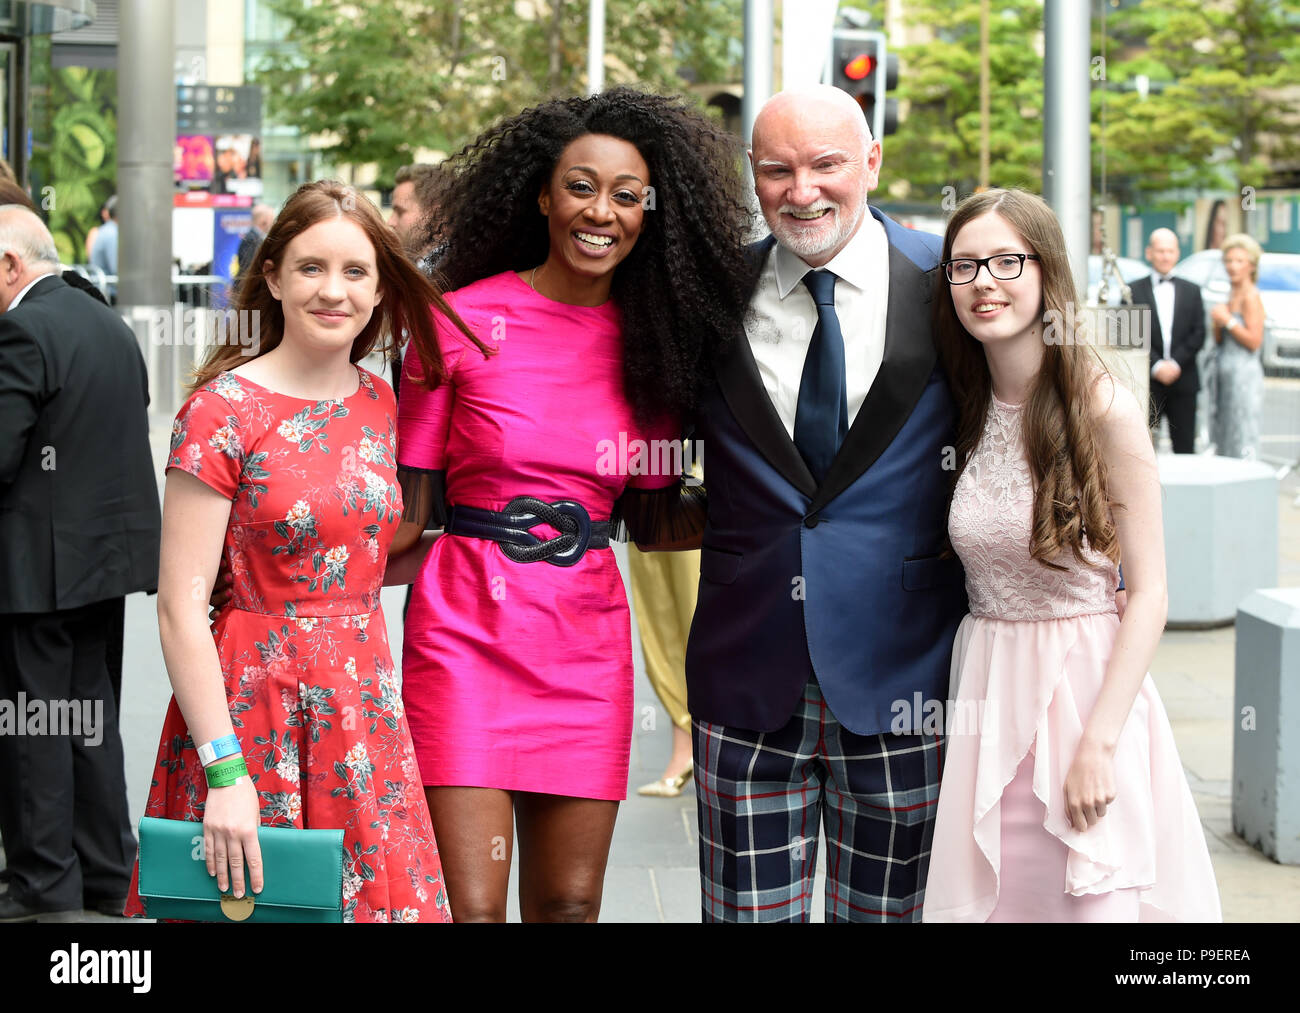 Sir Tom Hunter and singer Beverley Knight meet competition winners Melissa Croft (S3 Mearns Castle High School) and Cerys Gough (14 year old from Langholm Academy) as they arrive at the Edinburgh International Conference centre (EICC) to attend a fundraising dinner organised by The Hunter Foundation (THF) where former US first lady Michelle Obama is expected to speak about her time at the White House. - Stock Image